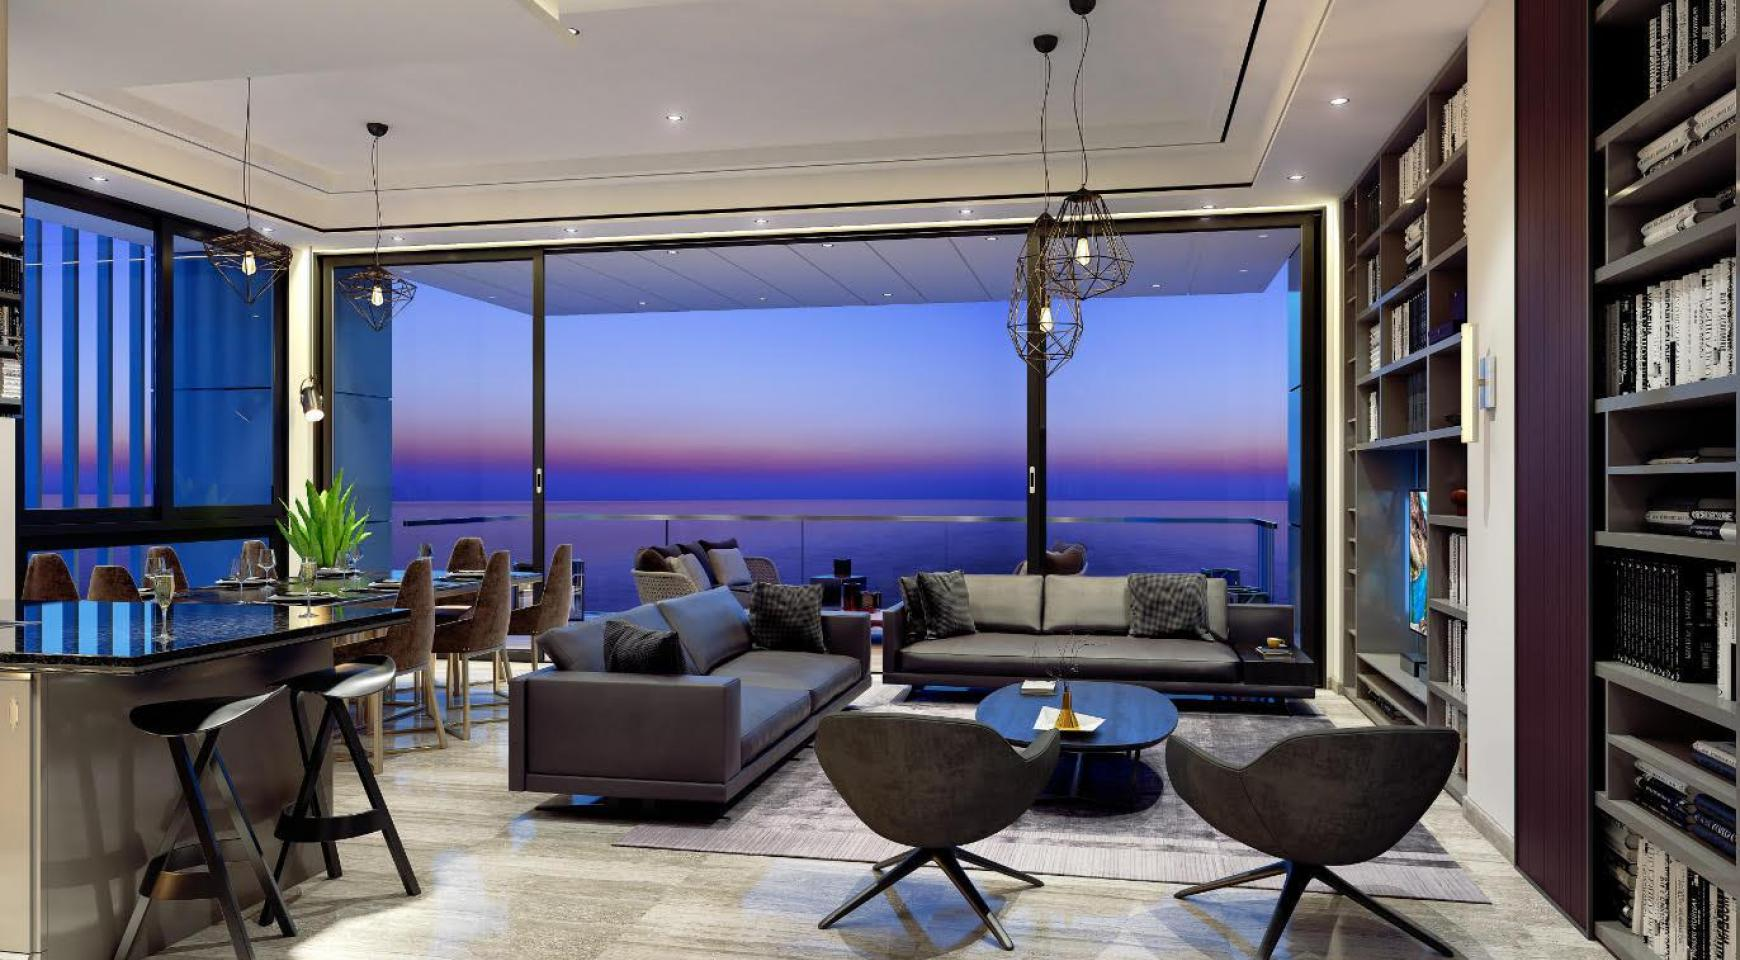 3 Bedroom Apartment with Sea Views in a Luxury Complex - 1